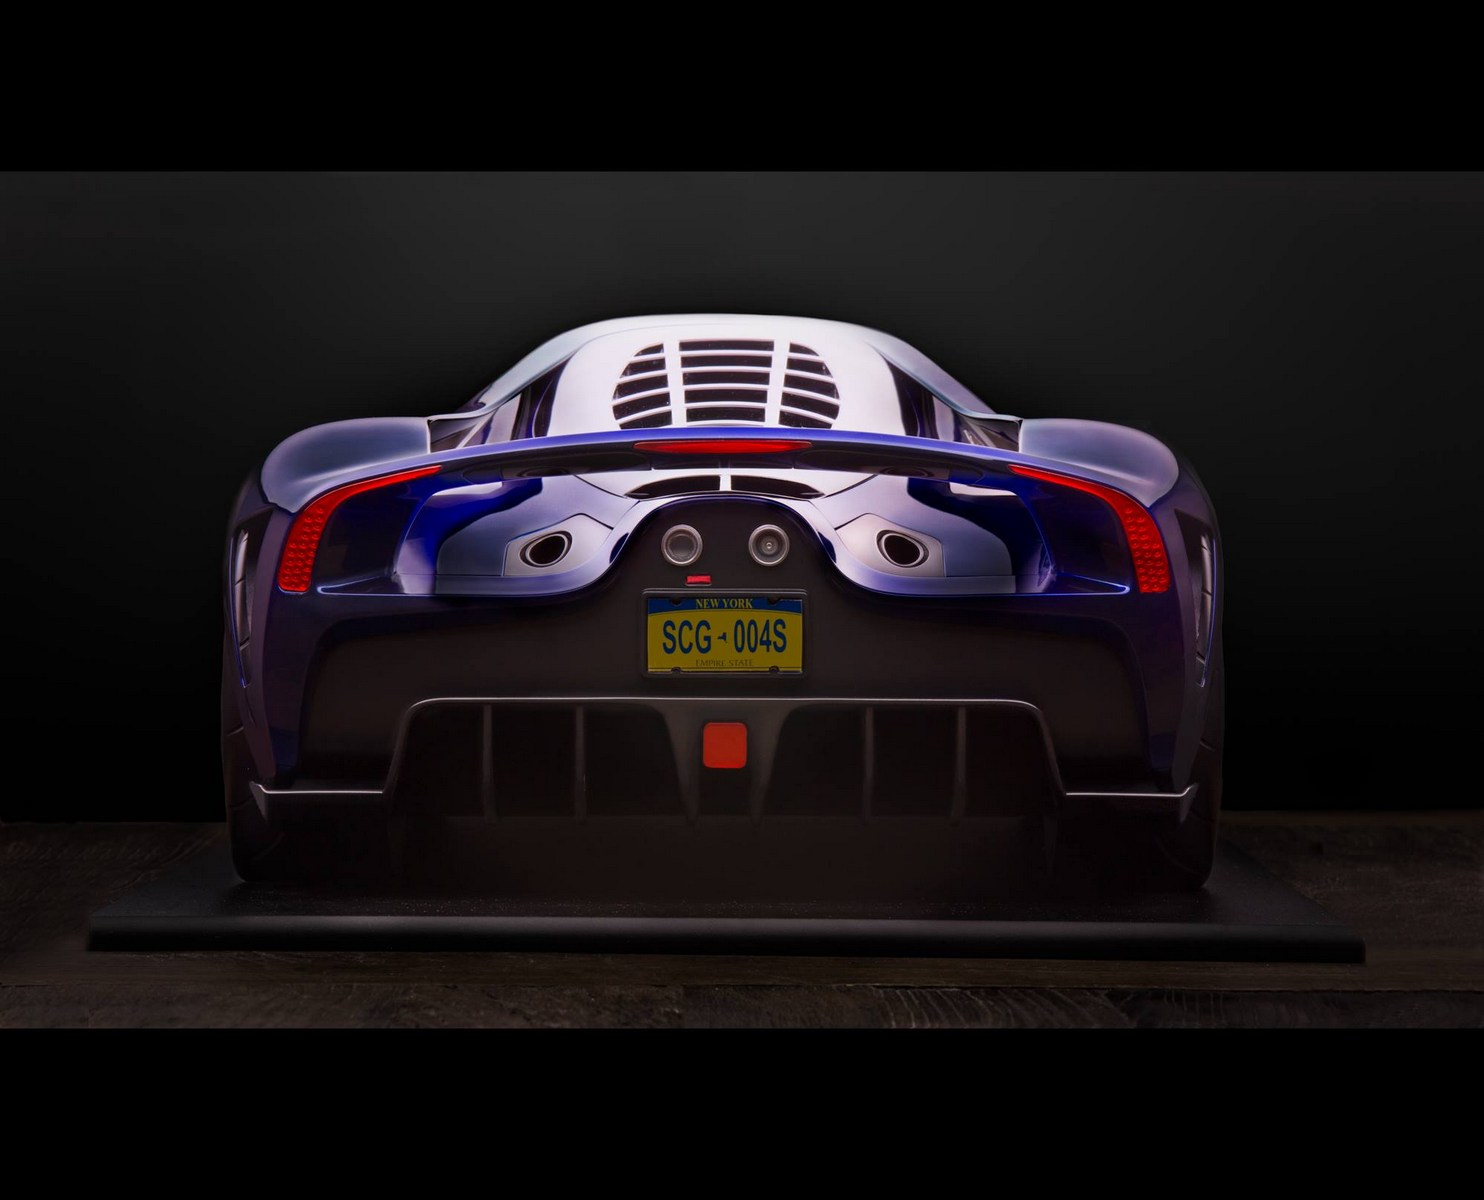 Scg 004s Supercar Unveiled With 650 Hp And 400k Price Tag